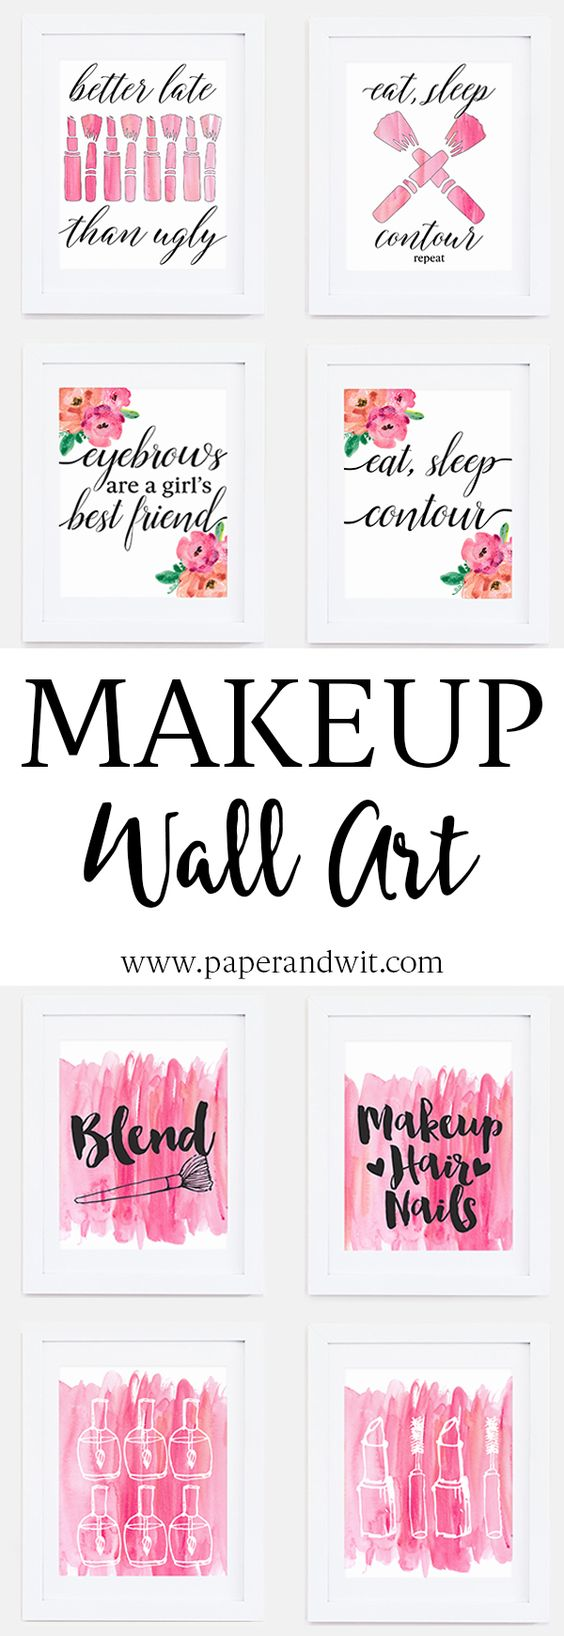 Makeup Wall Art The Perfect Finishing Touch To Your